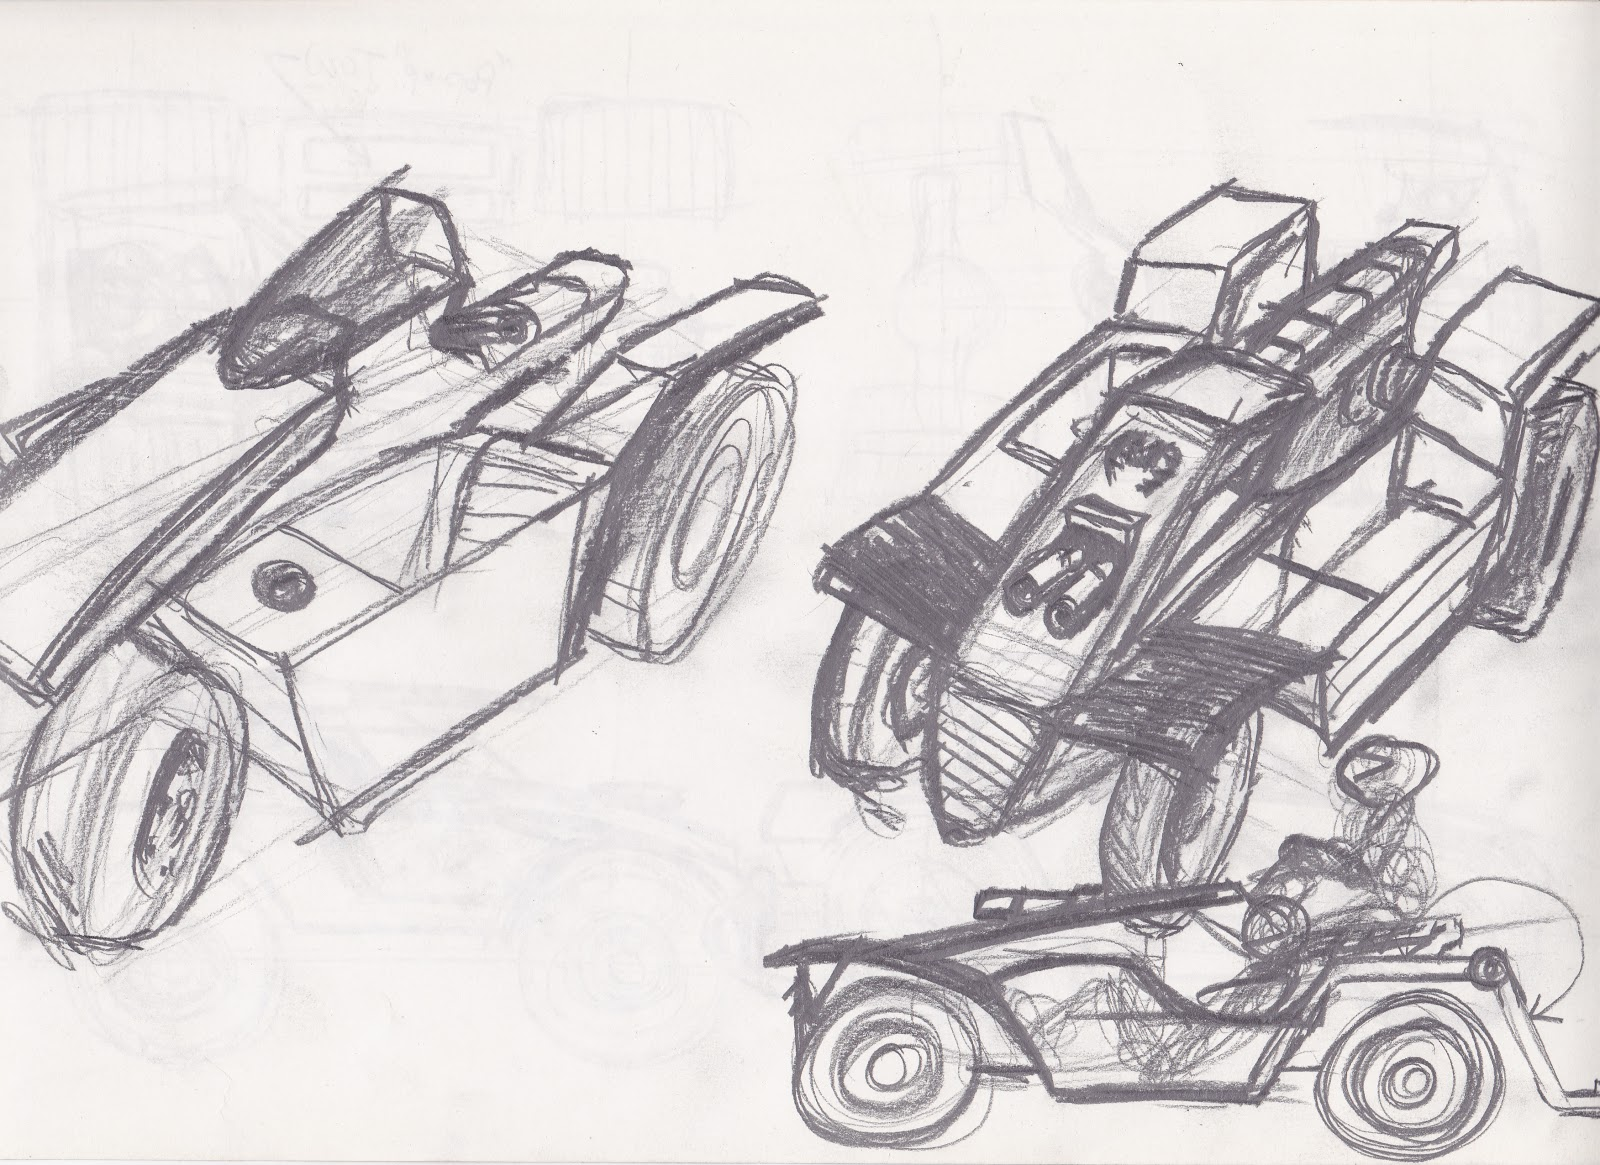 icebreaker s hq wannabe gijoe designer old vehicle drawings sketches